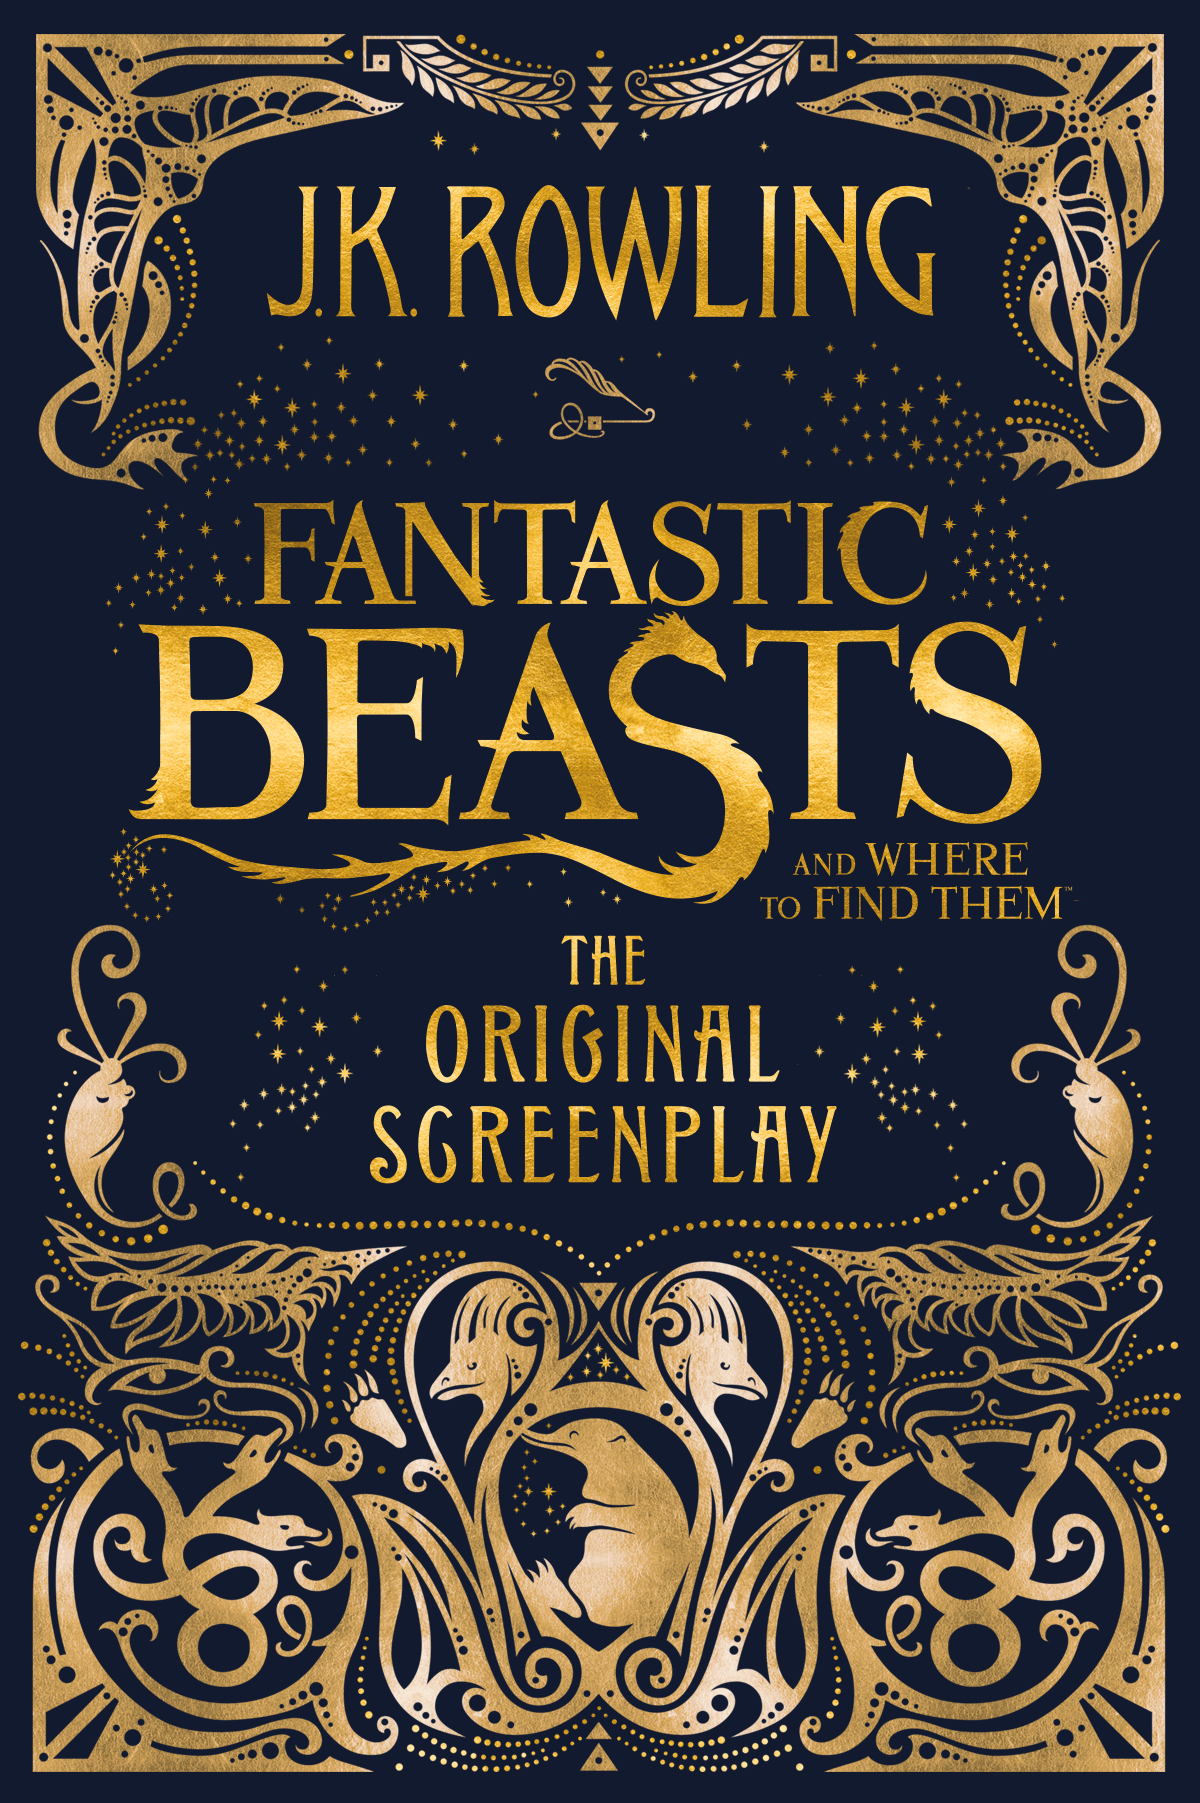 Fantastic Beasts and Where to Find Them: The Original Screenplay. Джоан Кэтлин Роулинг